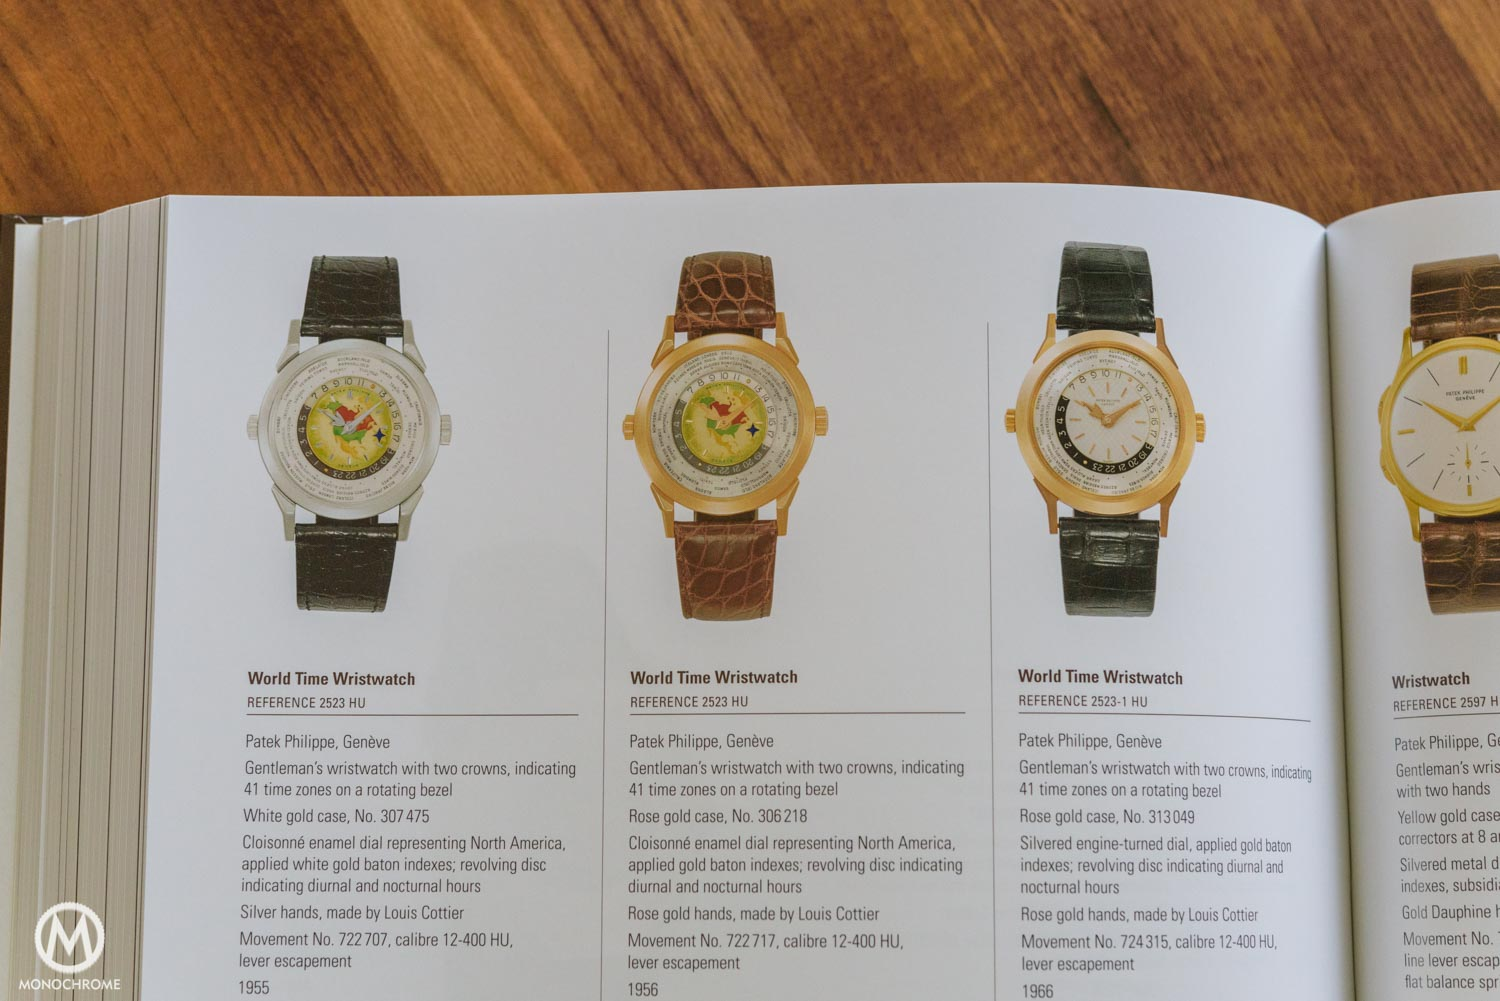 Patek Philippe Watches by the Patek Philippe Museum - Book Review